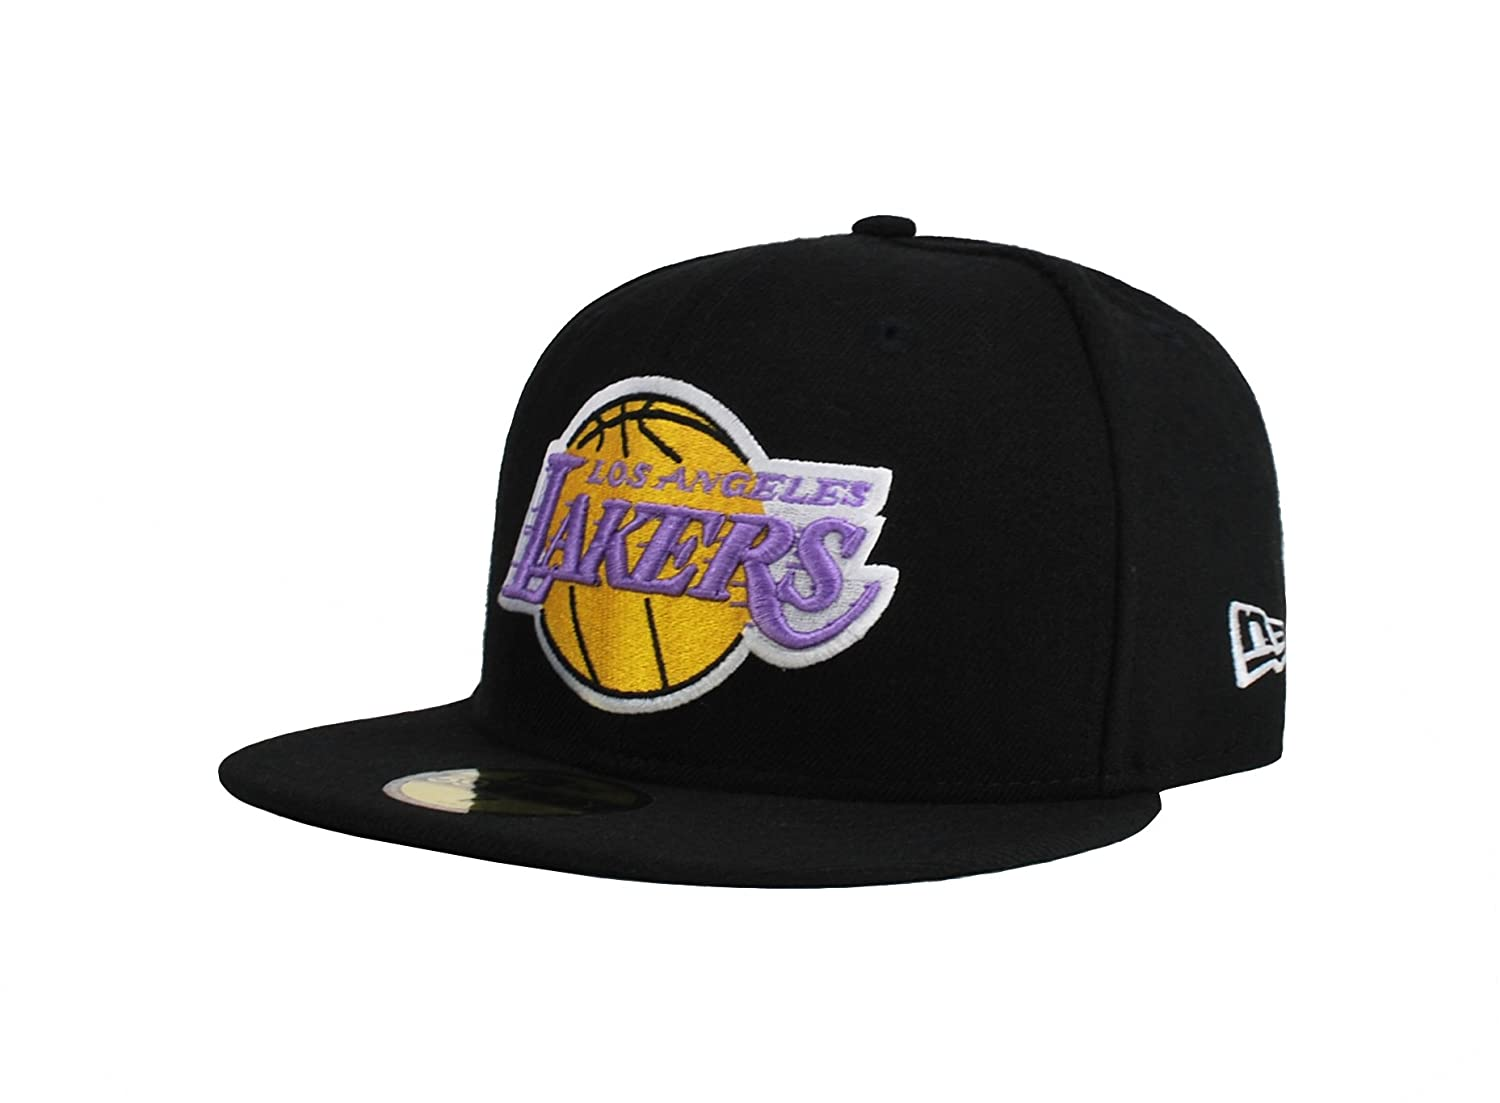 b705be80877 Amazon.com   New Era 59fifty Hwcbasic Nba Los Angeles Lakers Fitted Men s Hat  Cap Black purple (7 1 8)   Sports   Outdoors